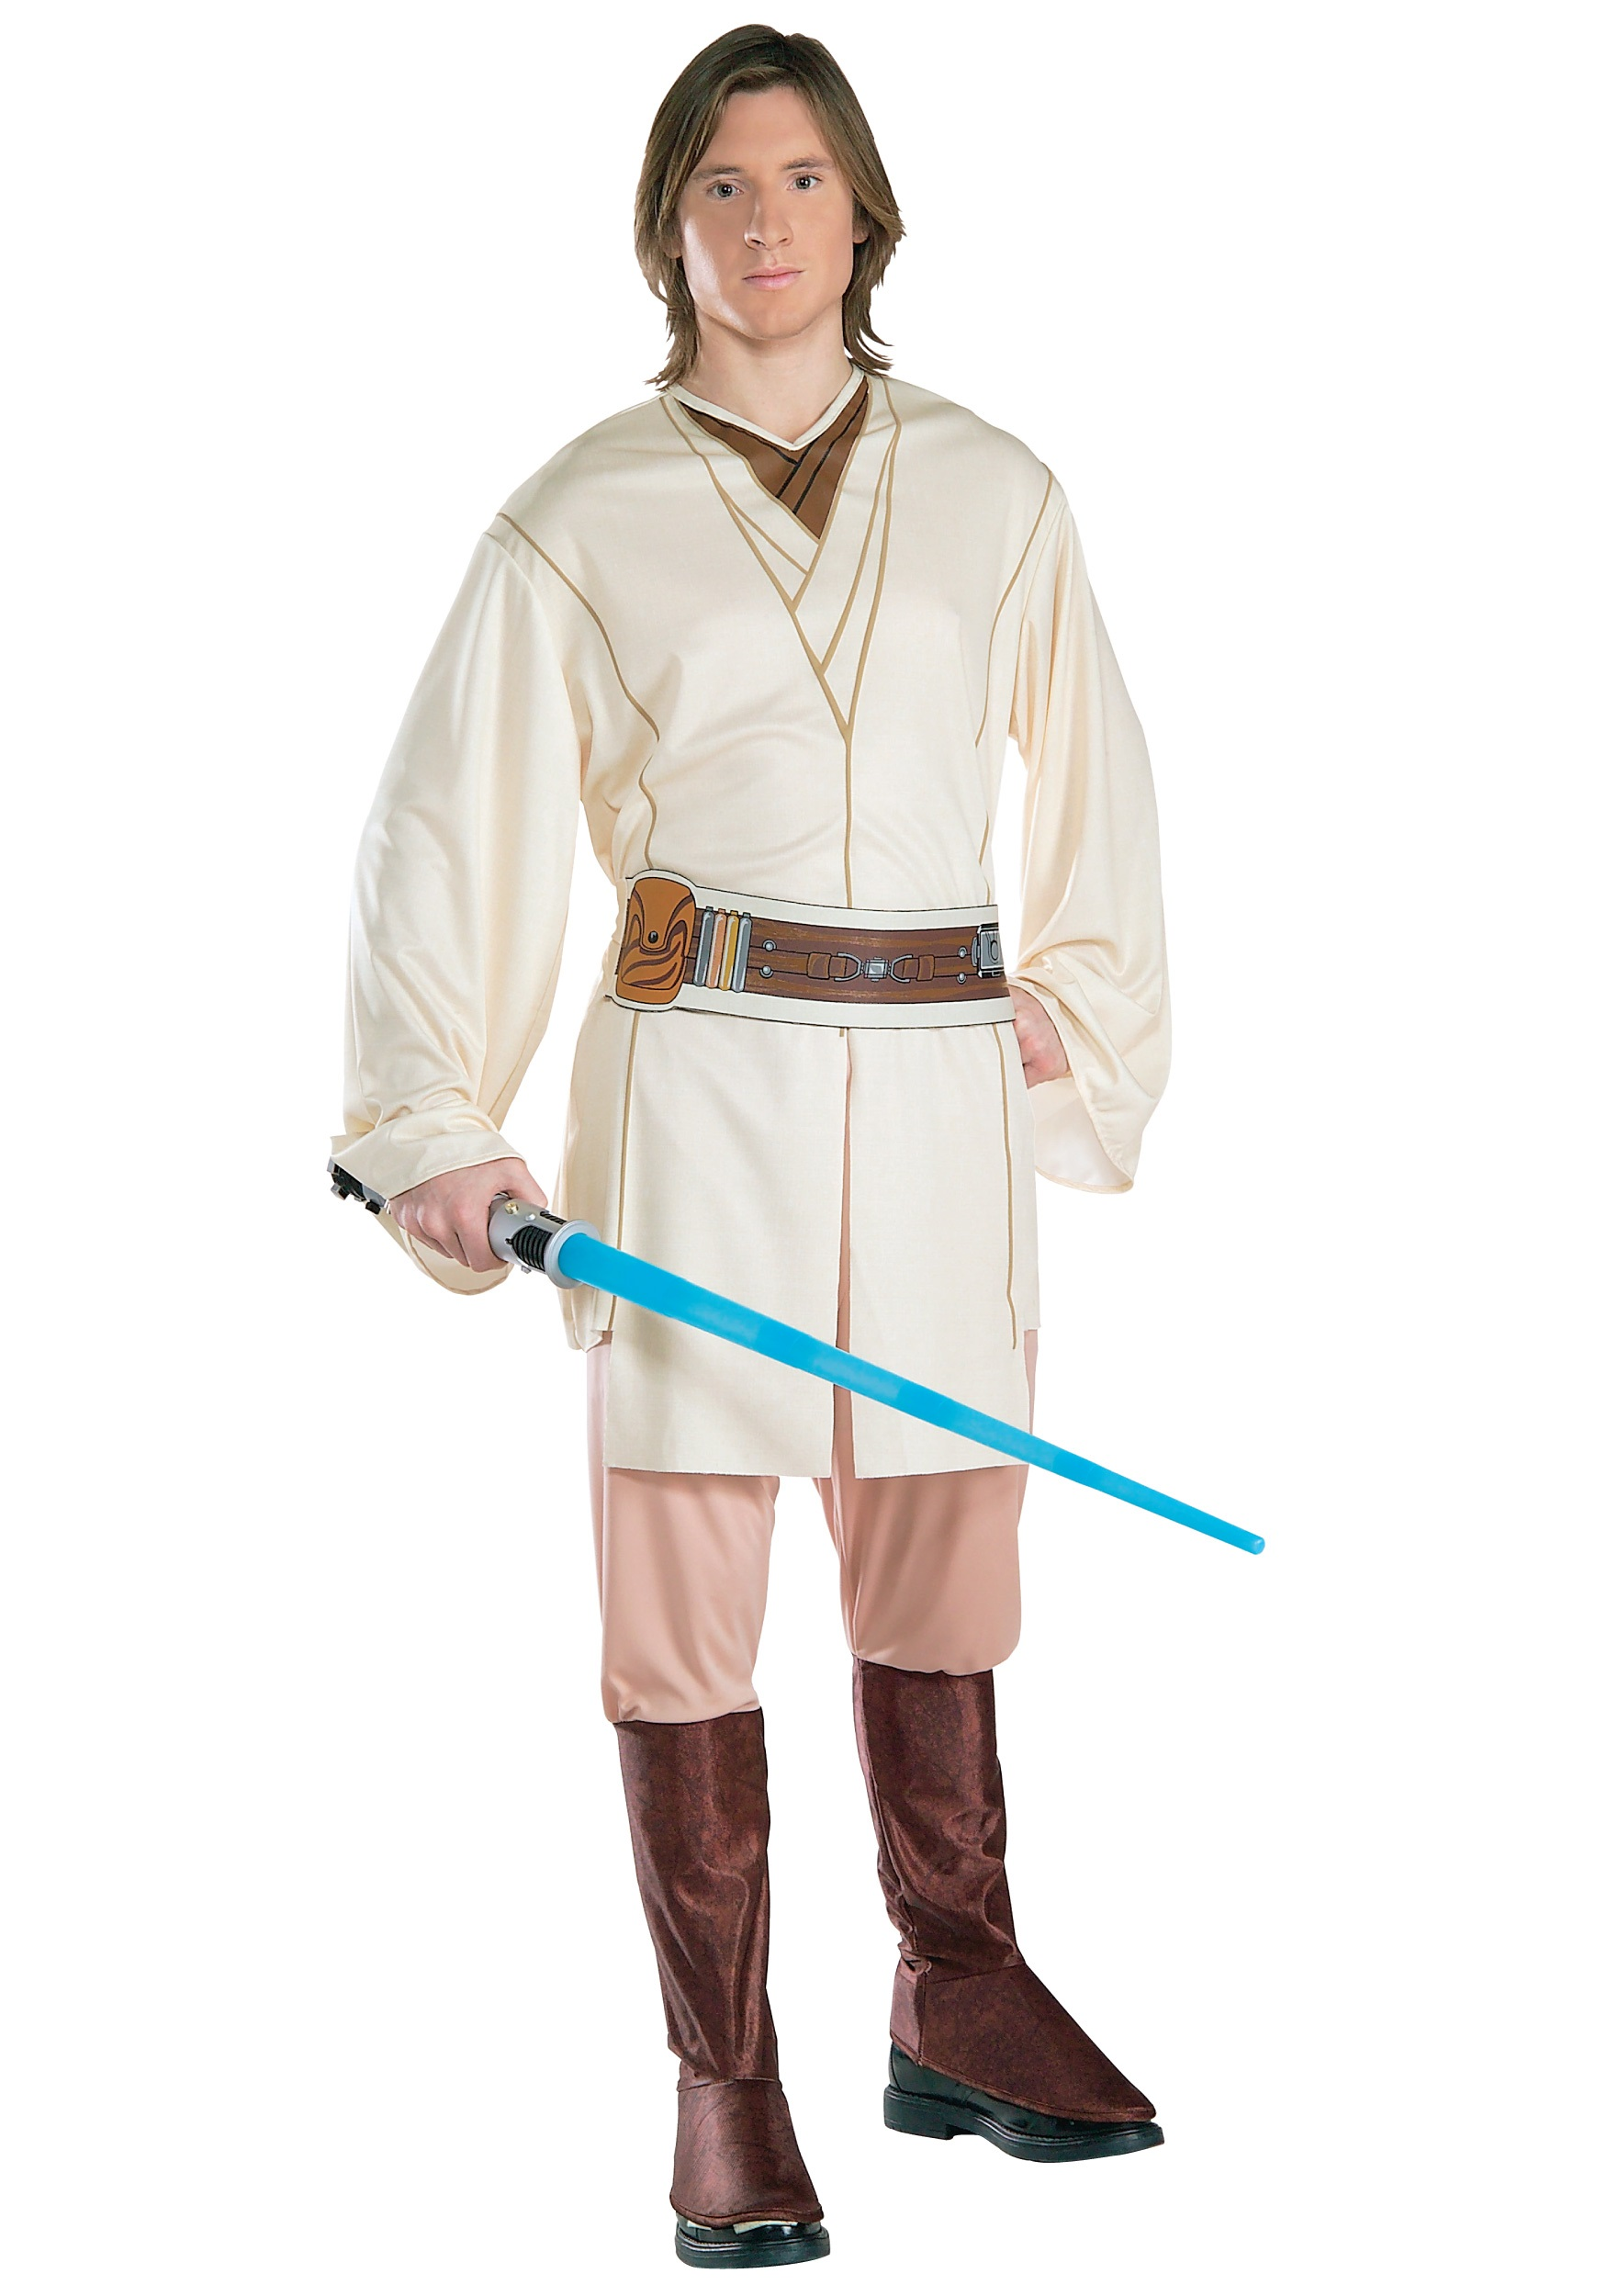 Adult Obi-Wan Kenobi Costume  sc 1 st  Halloween Costumes & Obi Wan Kenobi Costumes - Adult Child Kids Star Wars Halloween Costume